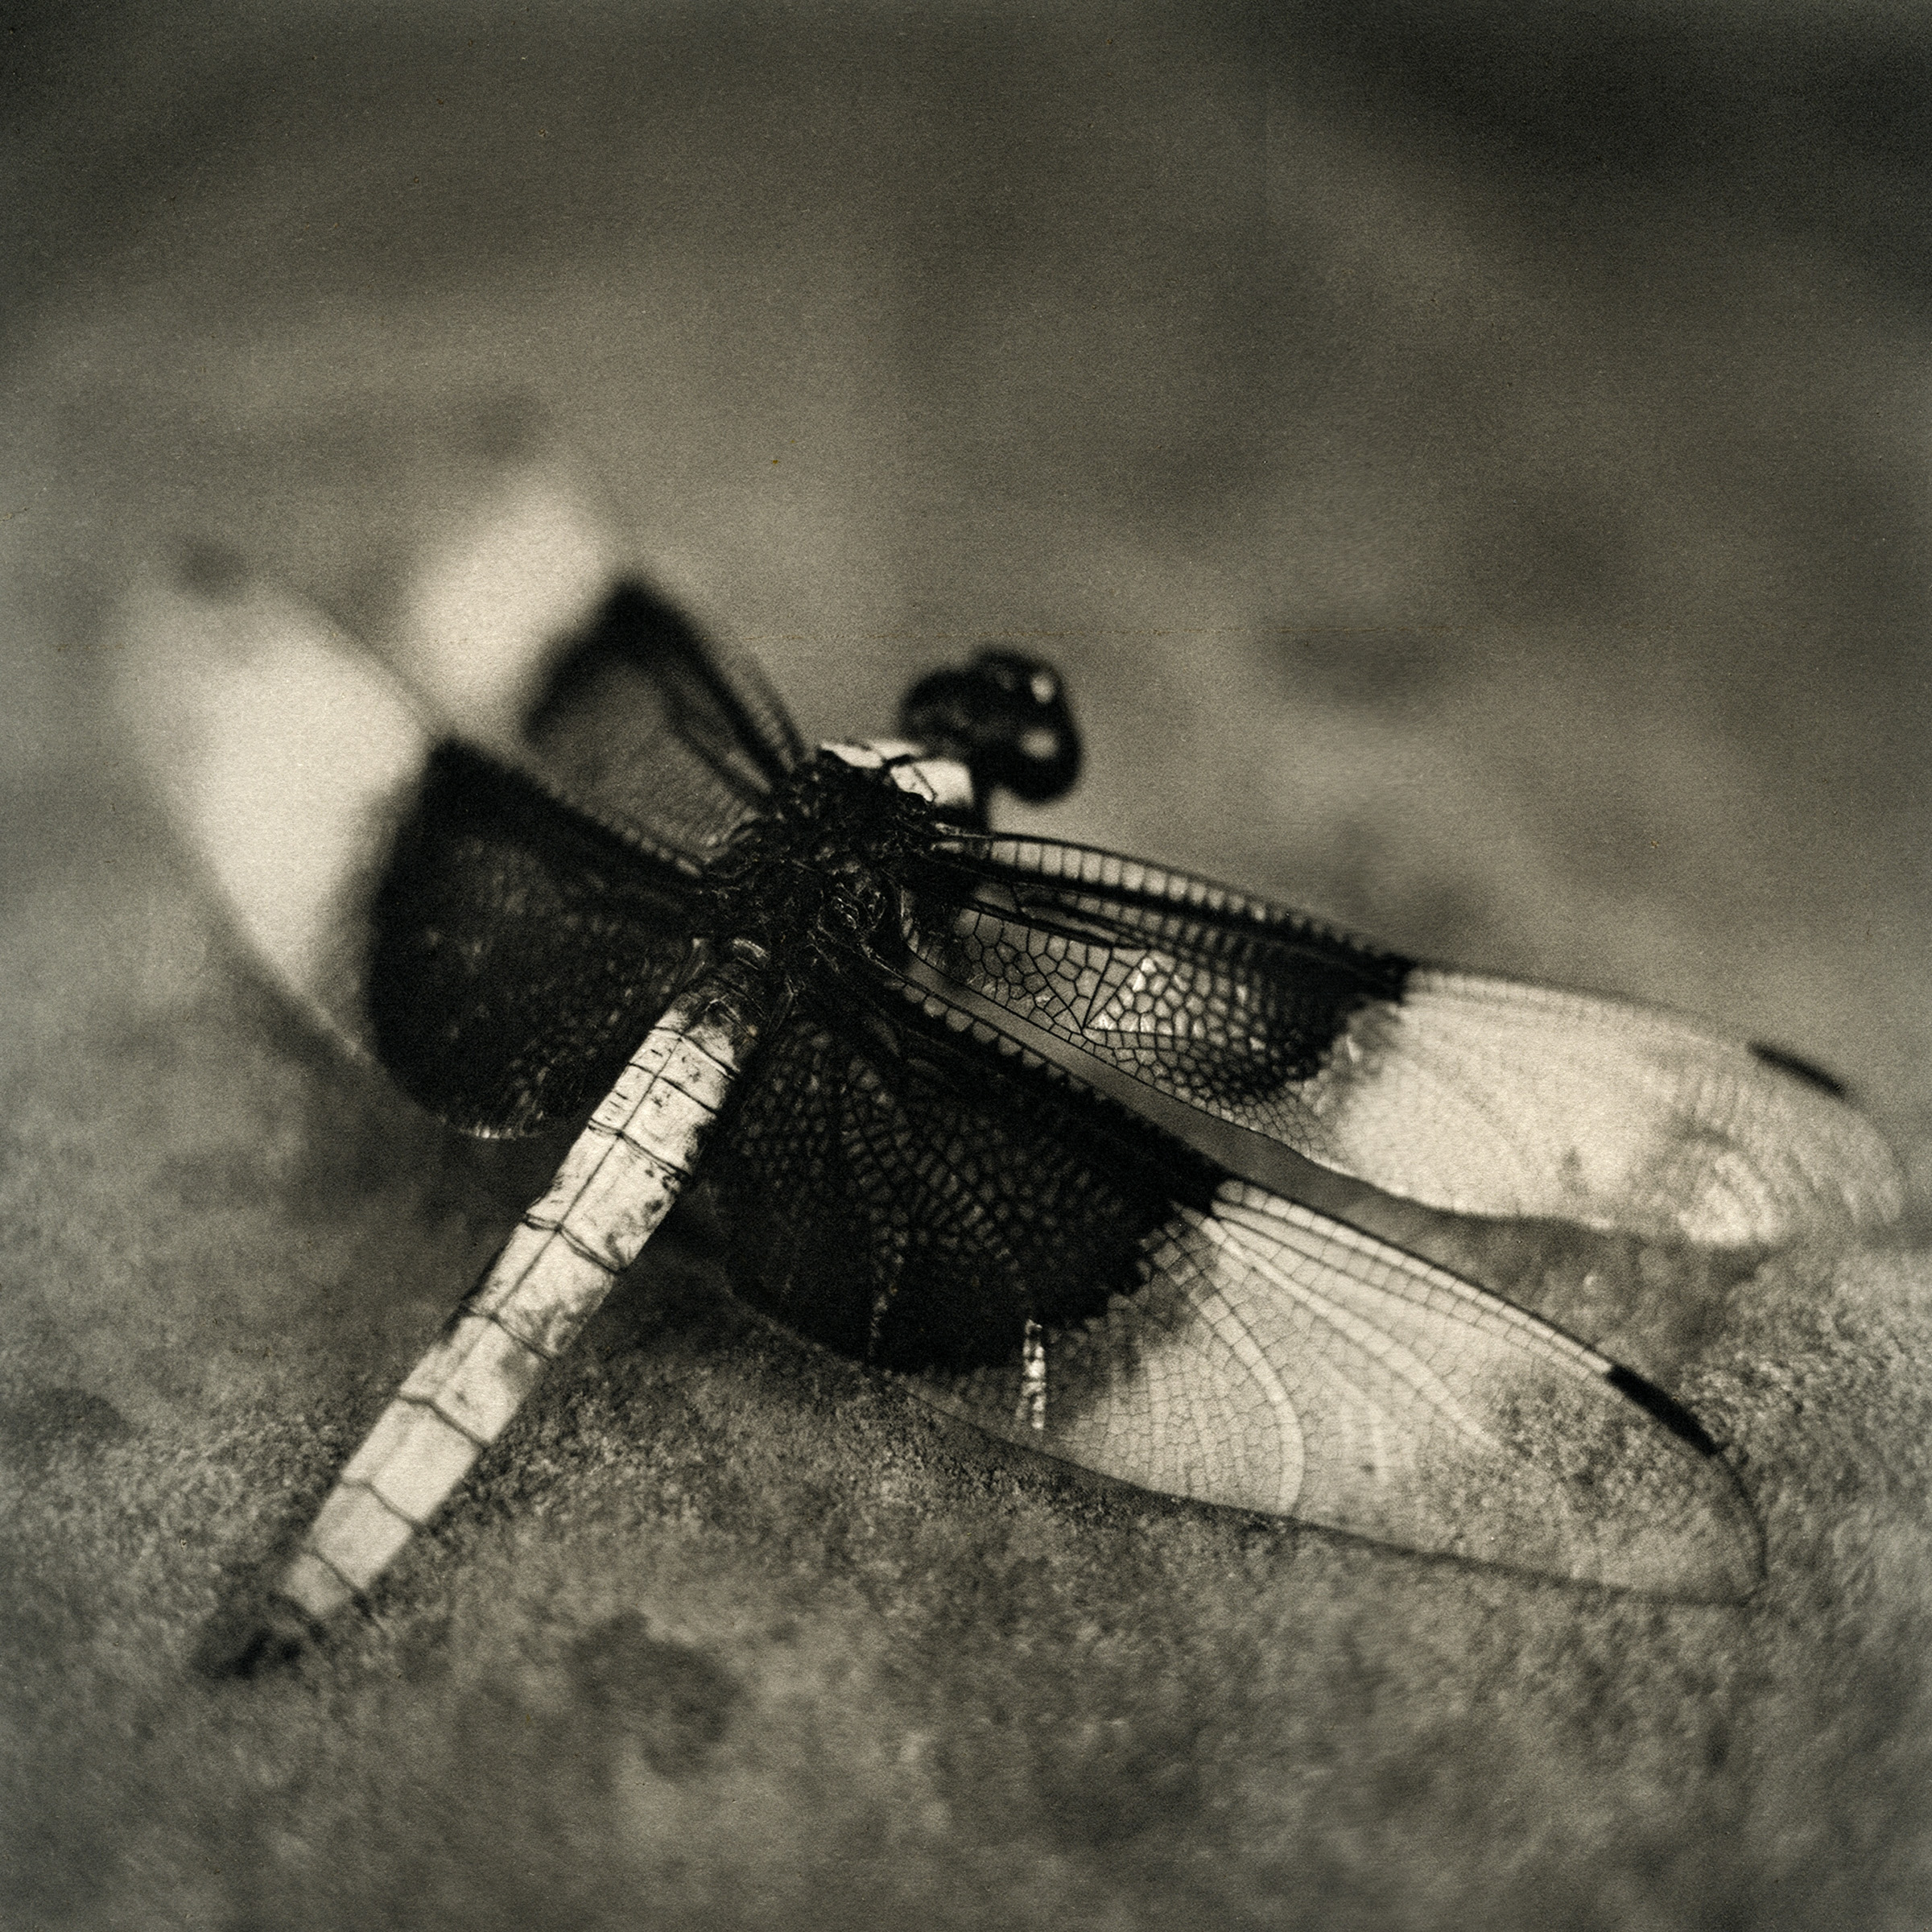 White Tail Skimmer Dragonfly, 2009